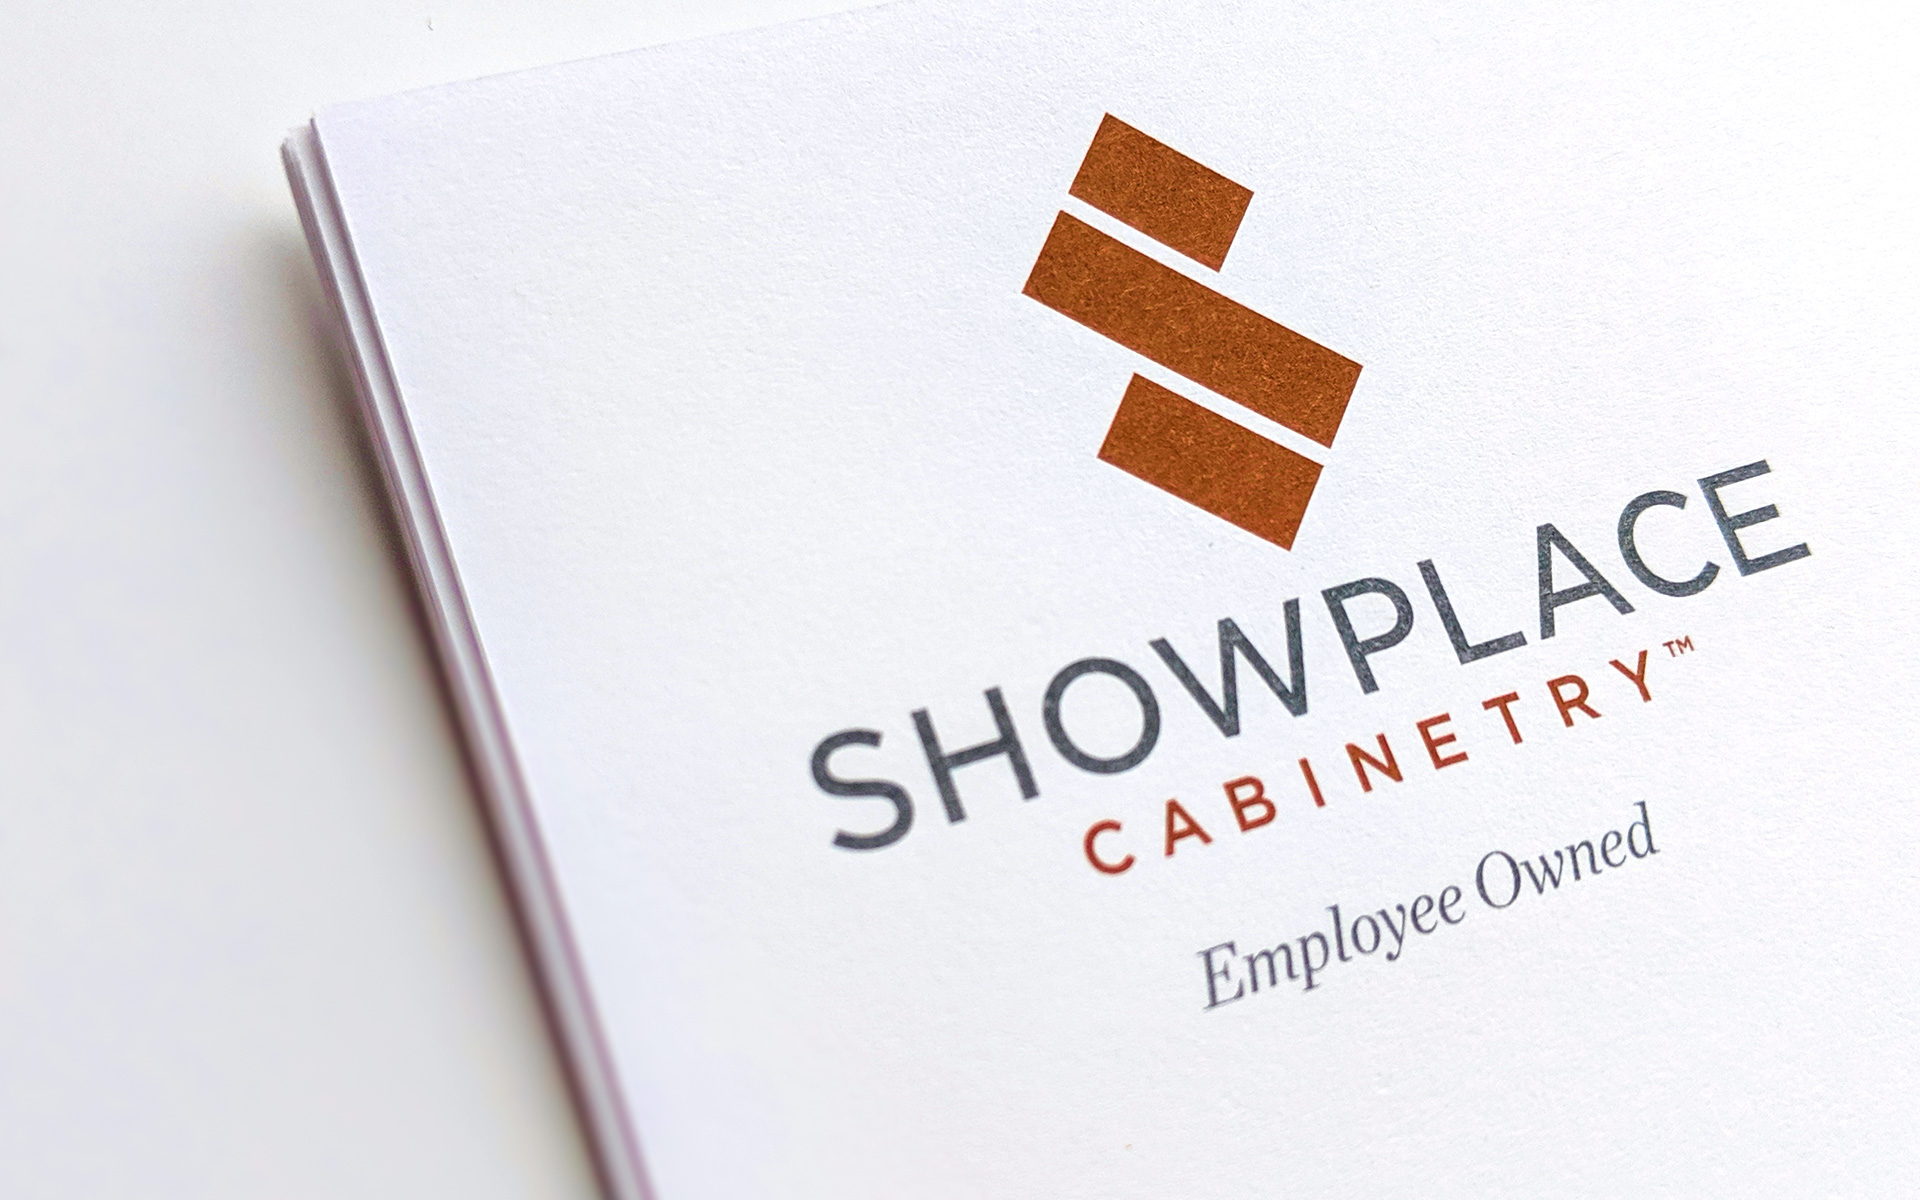 Showplace Cabinetry book